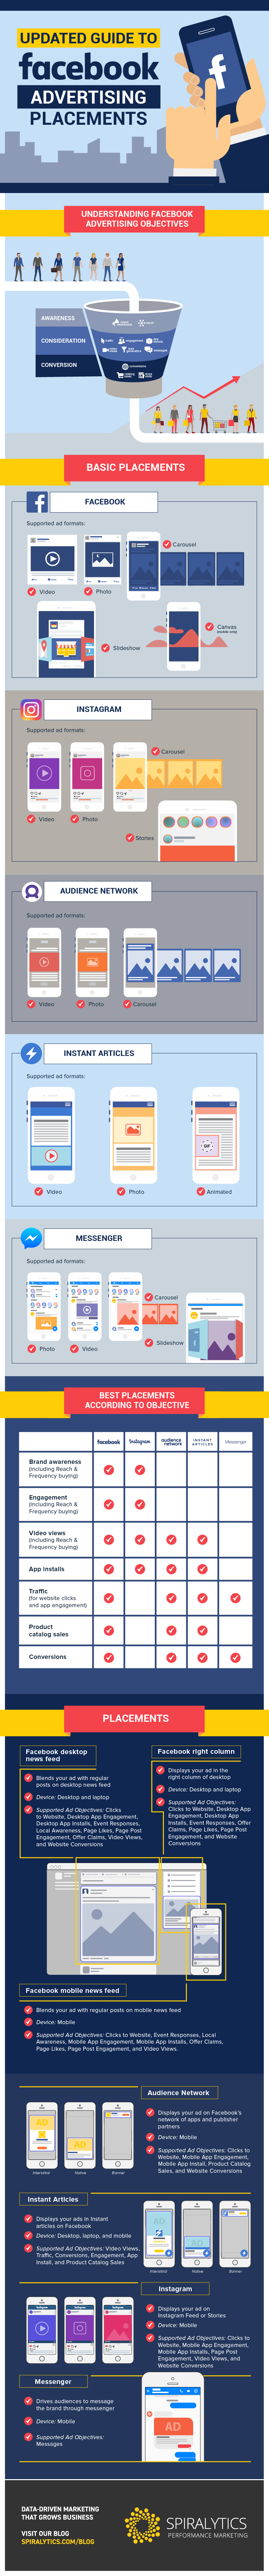 Infographic about Facebook advertising